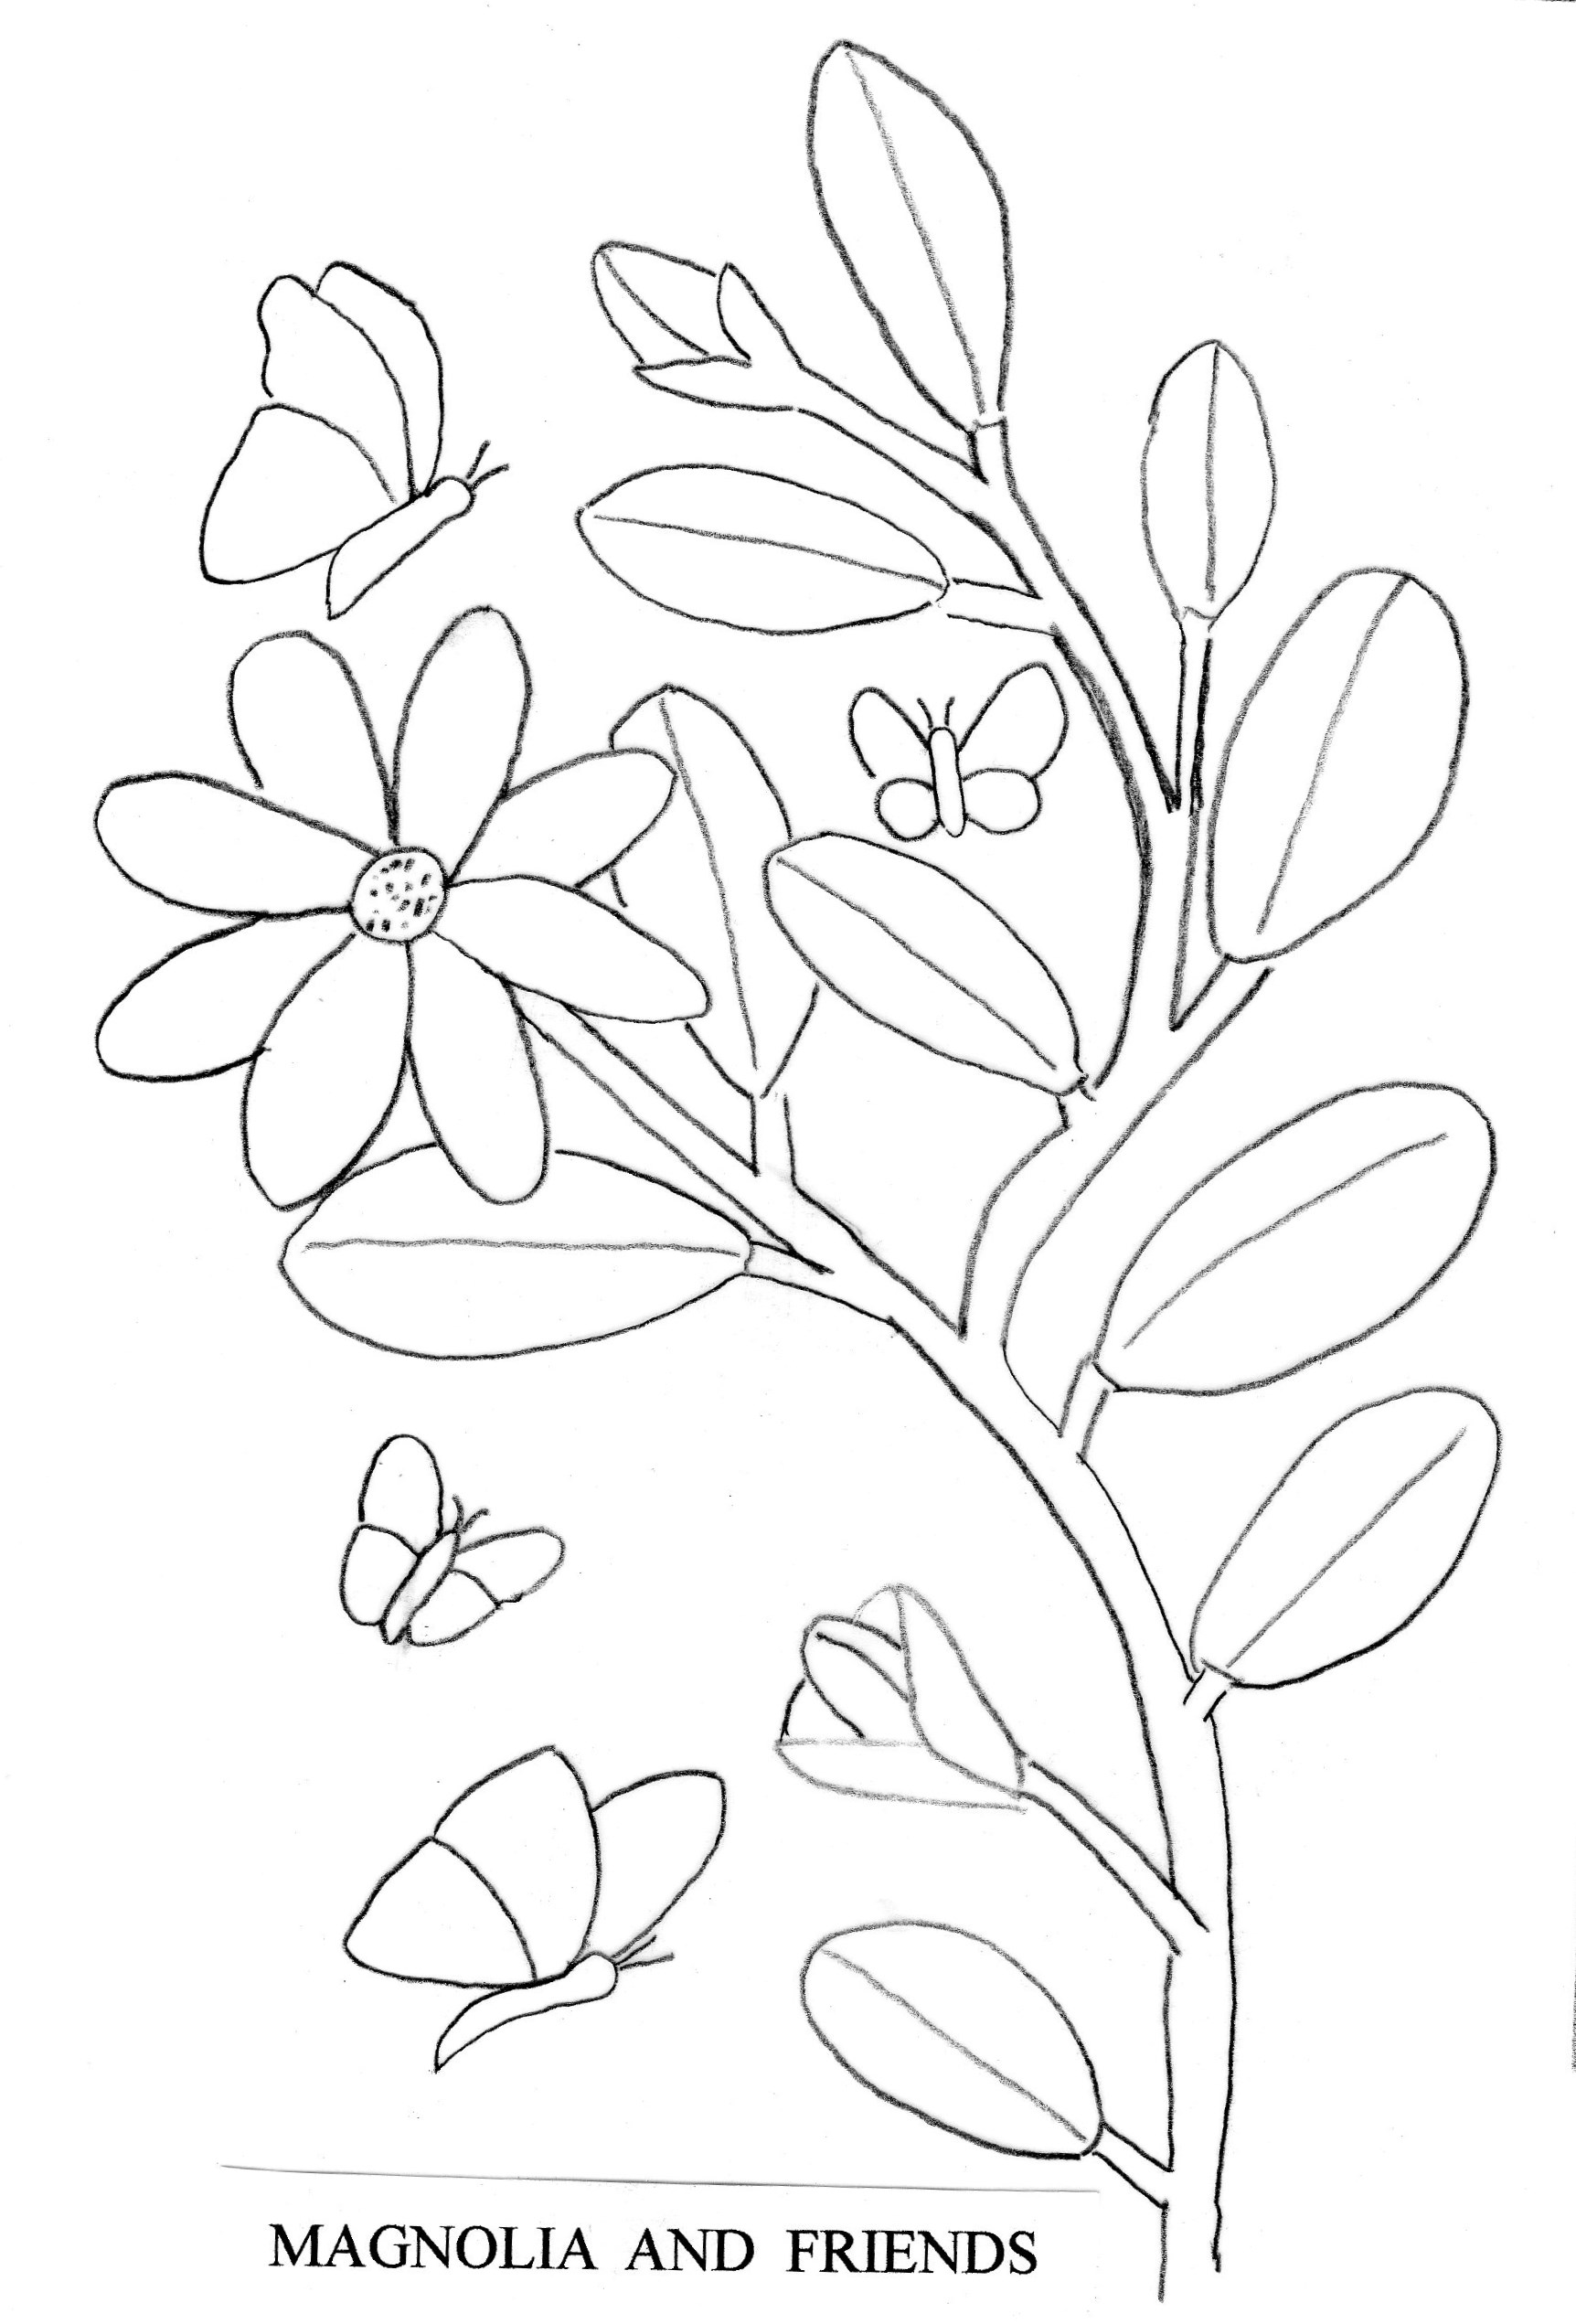 Magnolia Relief Wood Carving Pattern